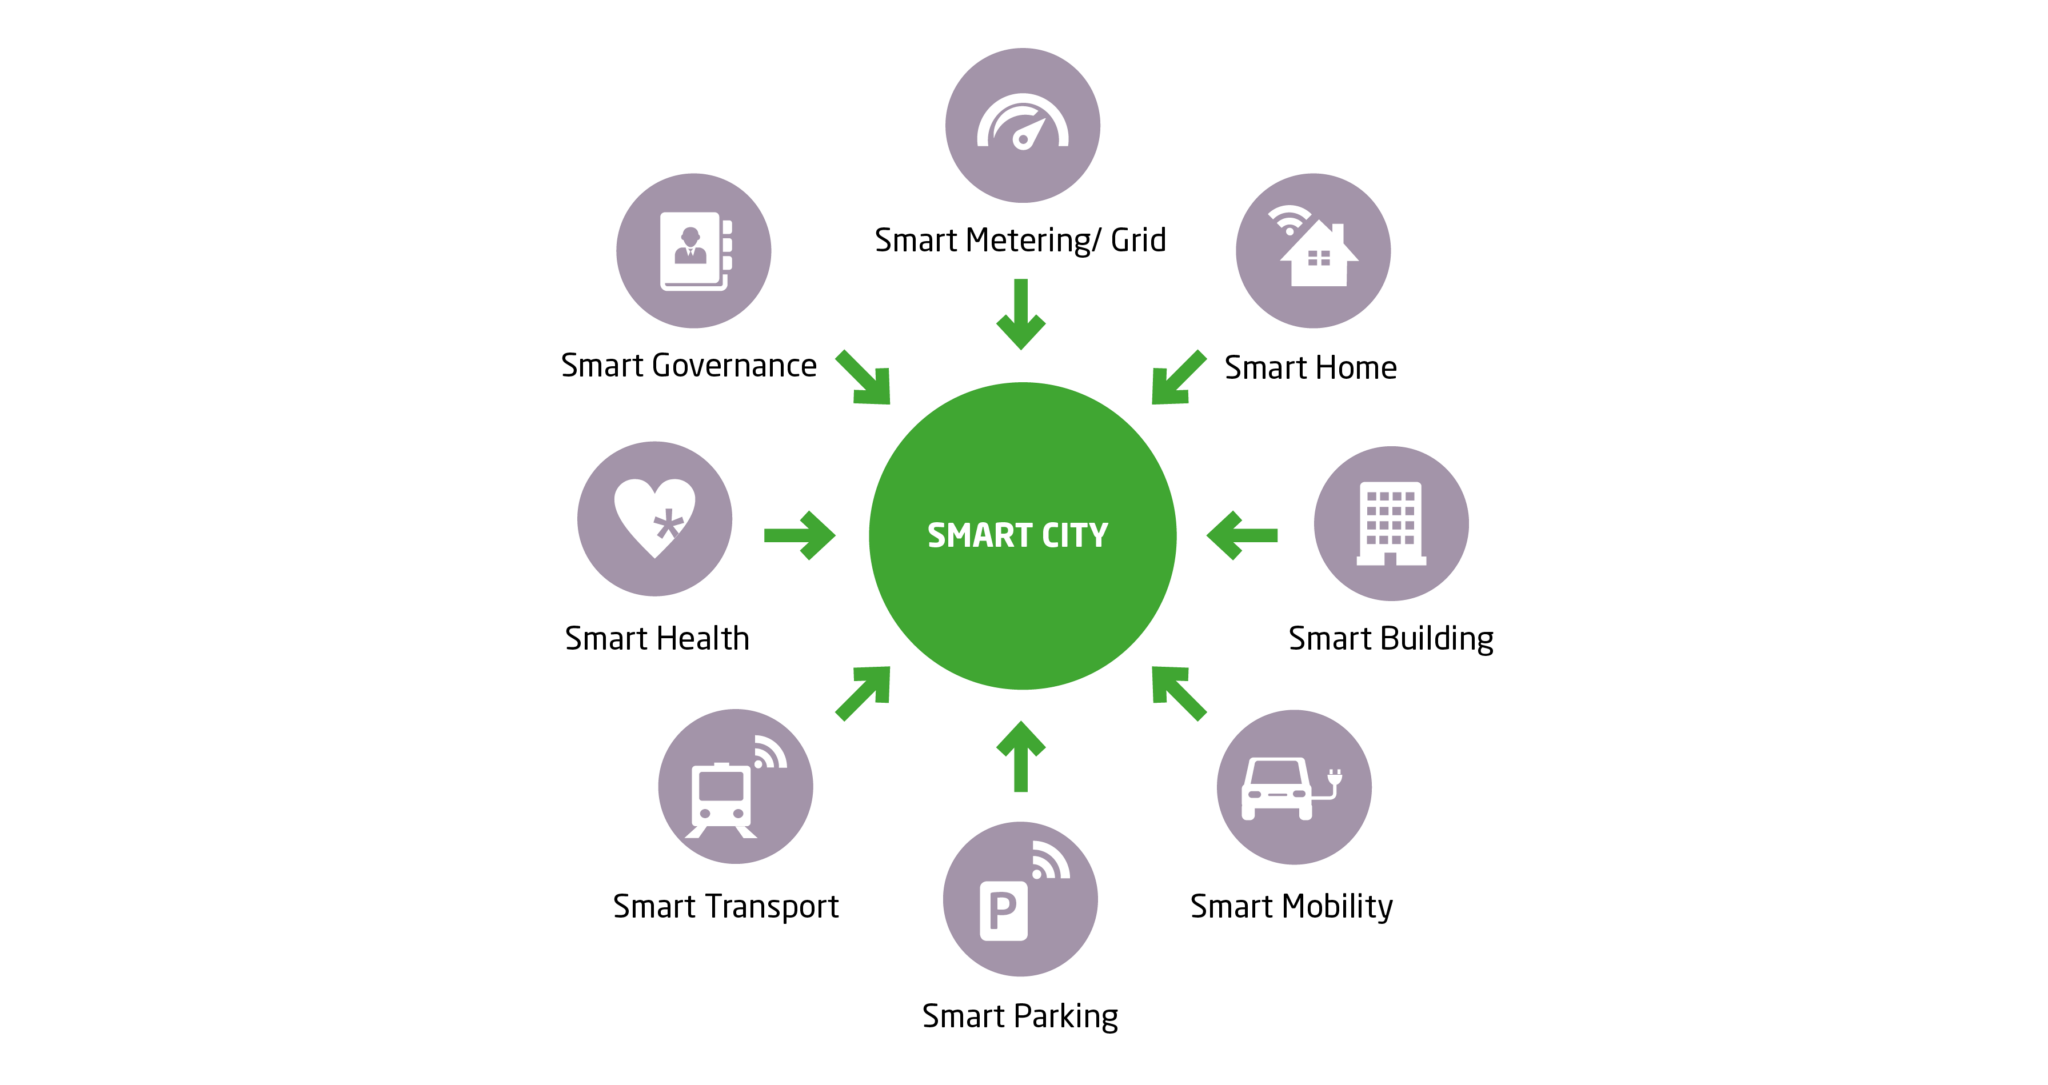 The elements of a smart city